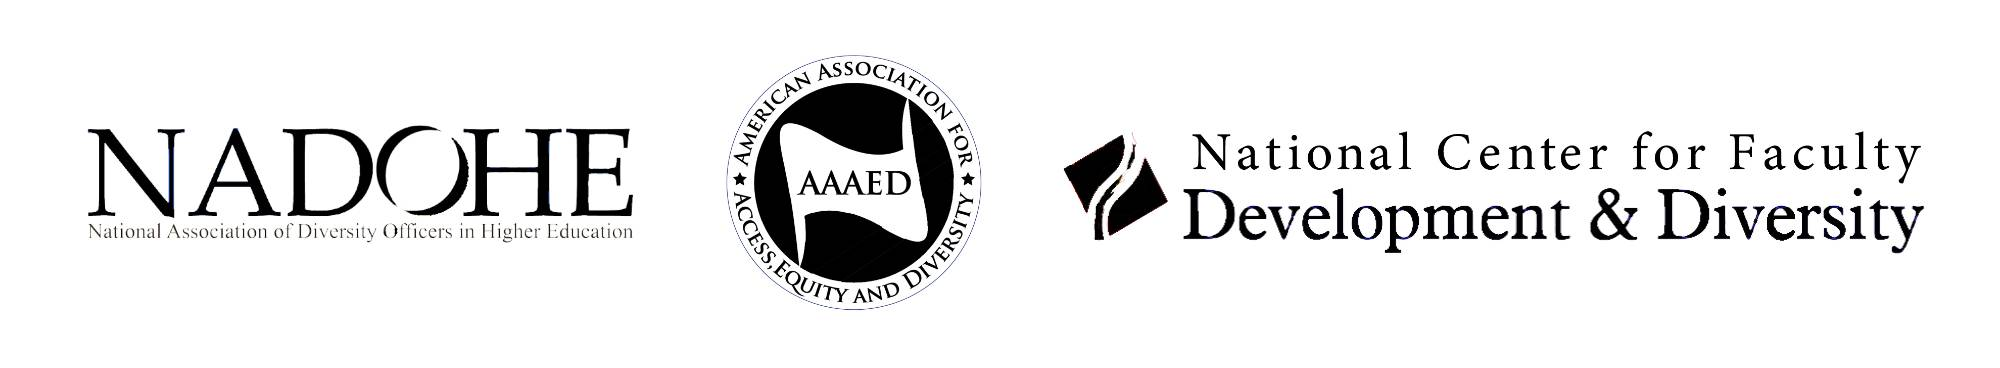 National Association of Diversity Officers in Higher Education; American Association for Access, Equity, and Deiversity; National Center for Faculty Development and Diversity